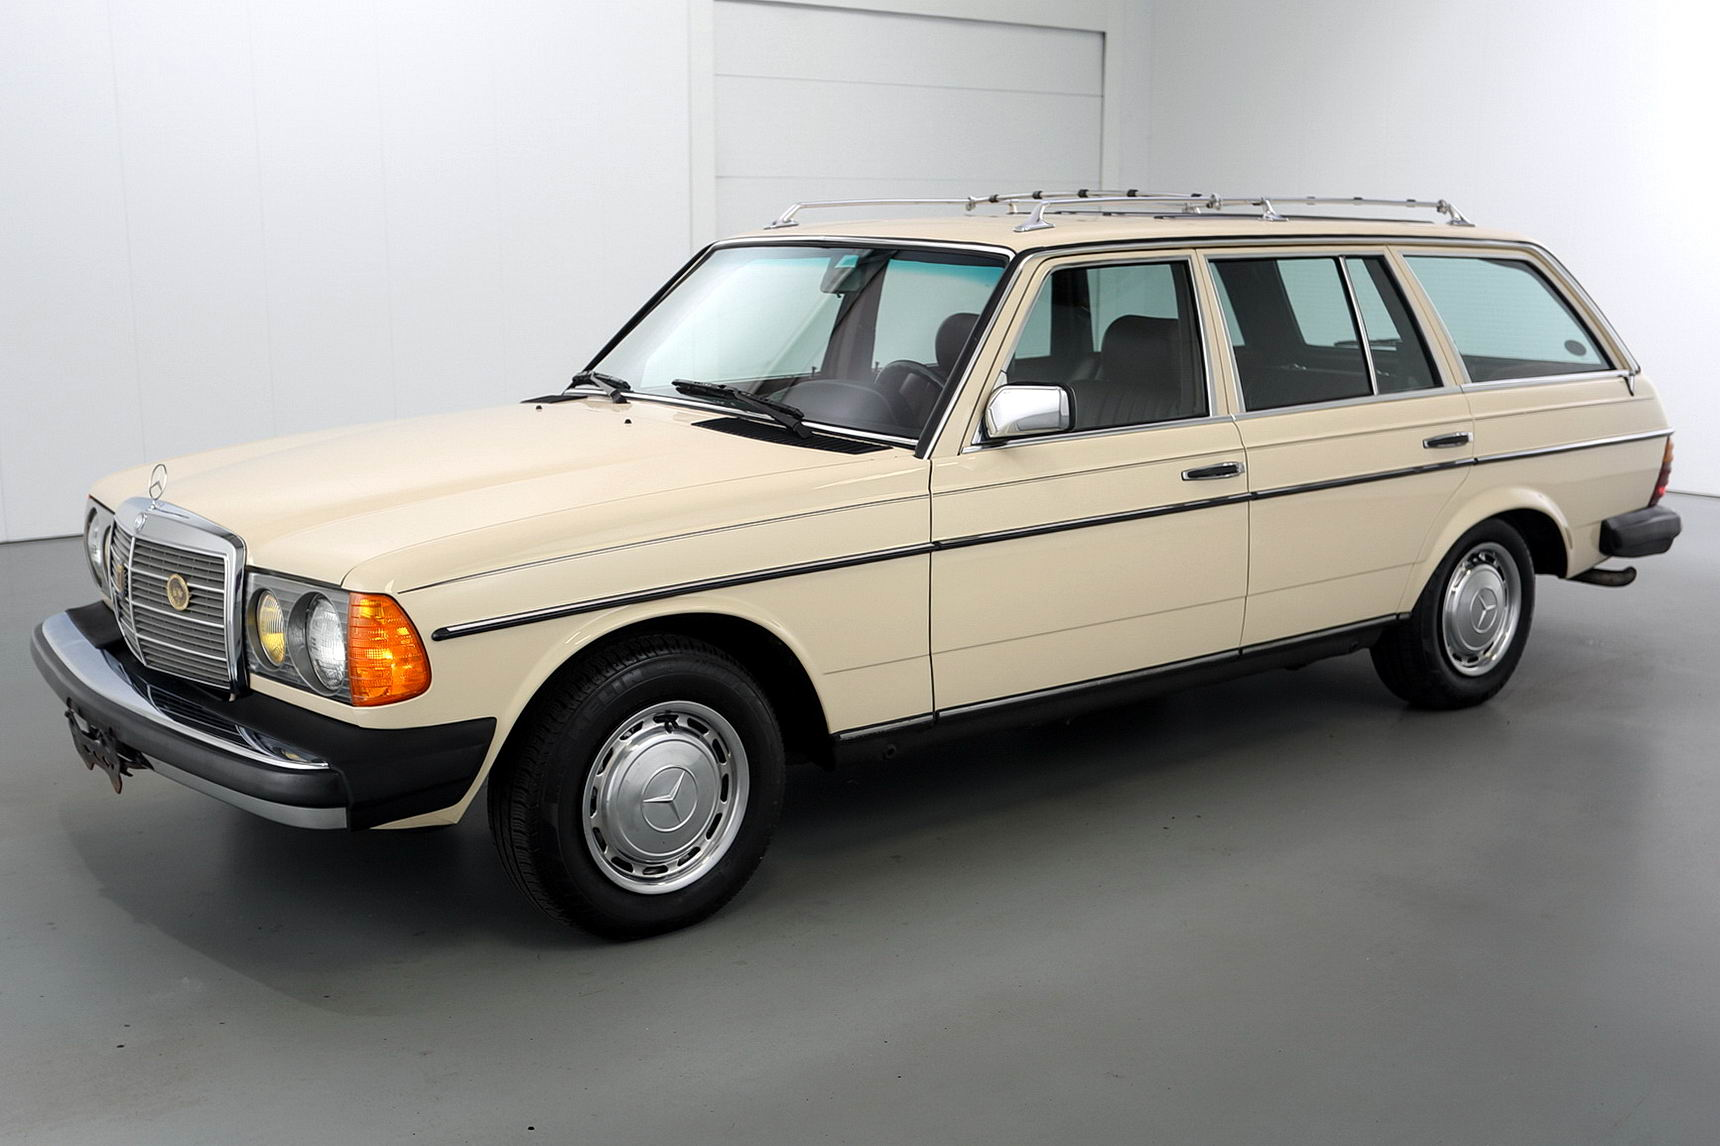 1985 mercedes benz 300td estate wagon brutal motors for Mercedes benz of hoffman estates